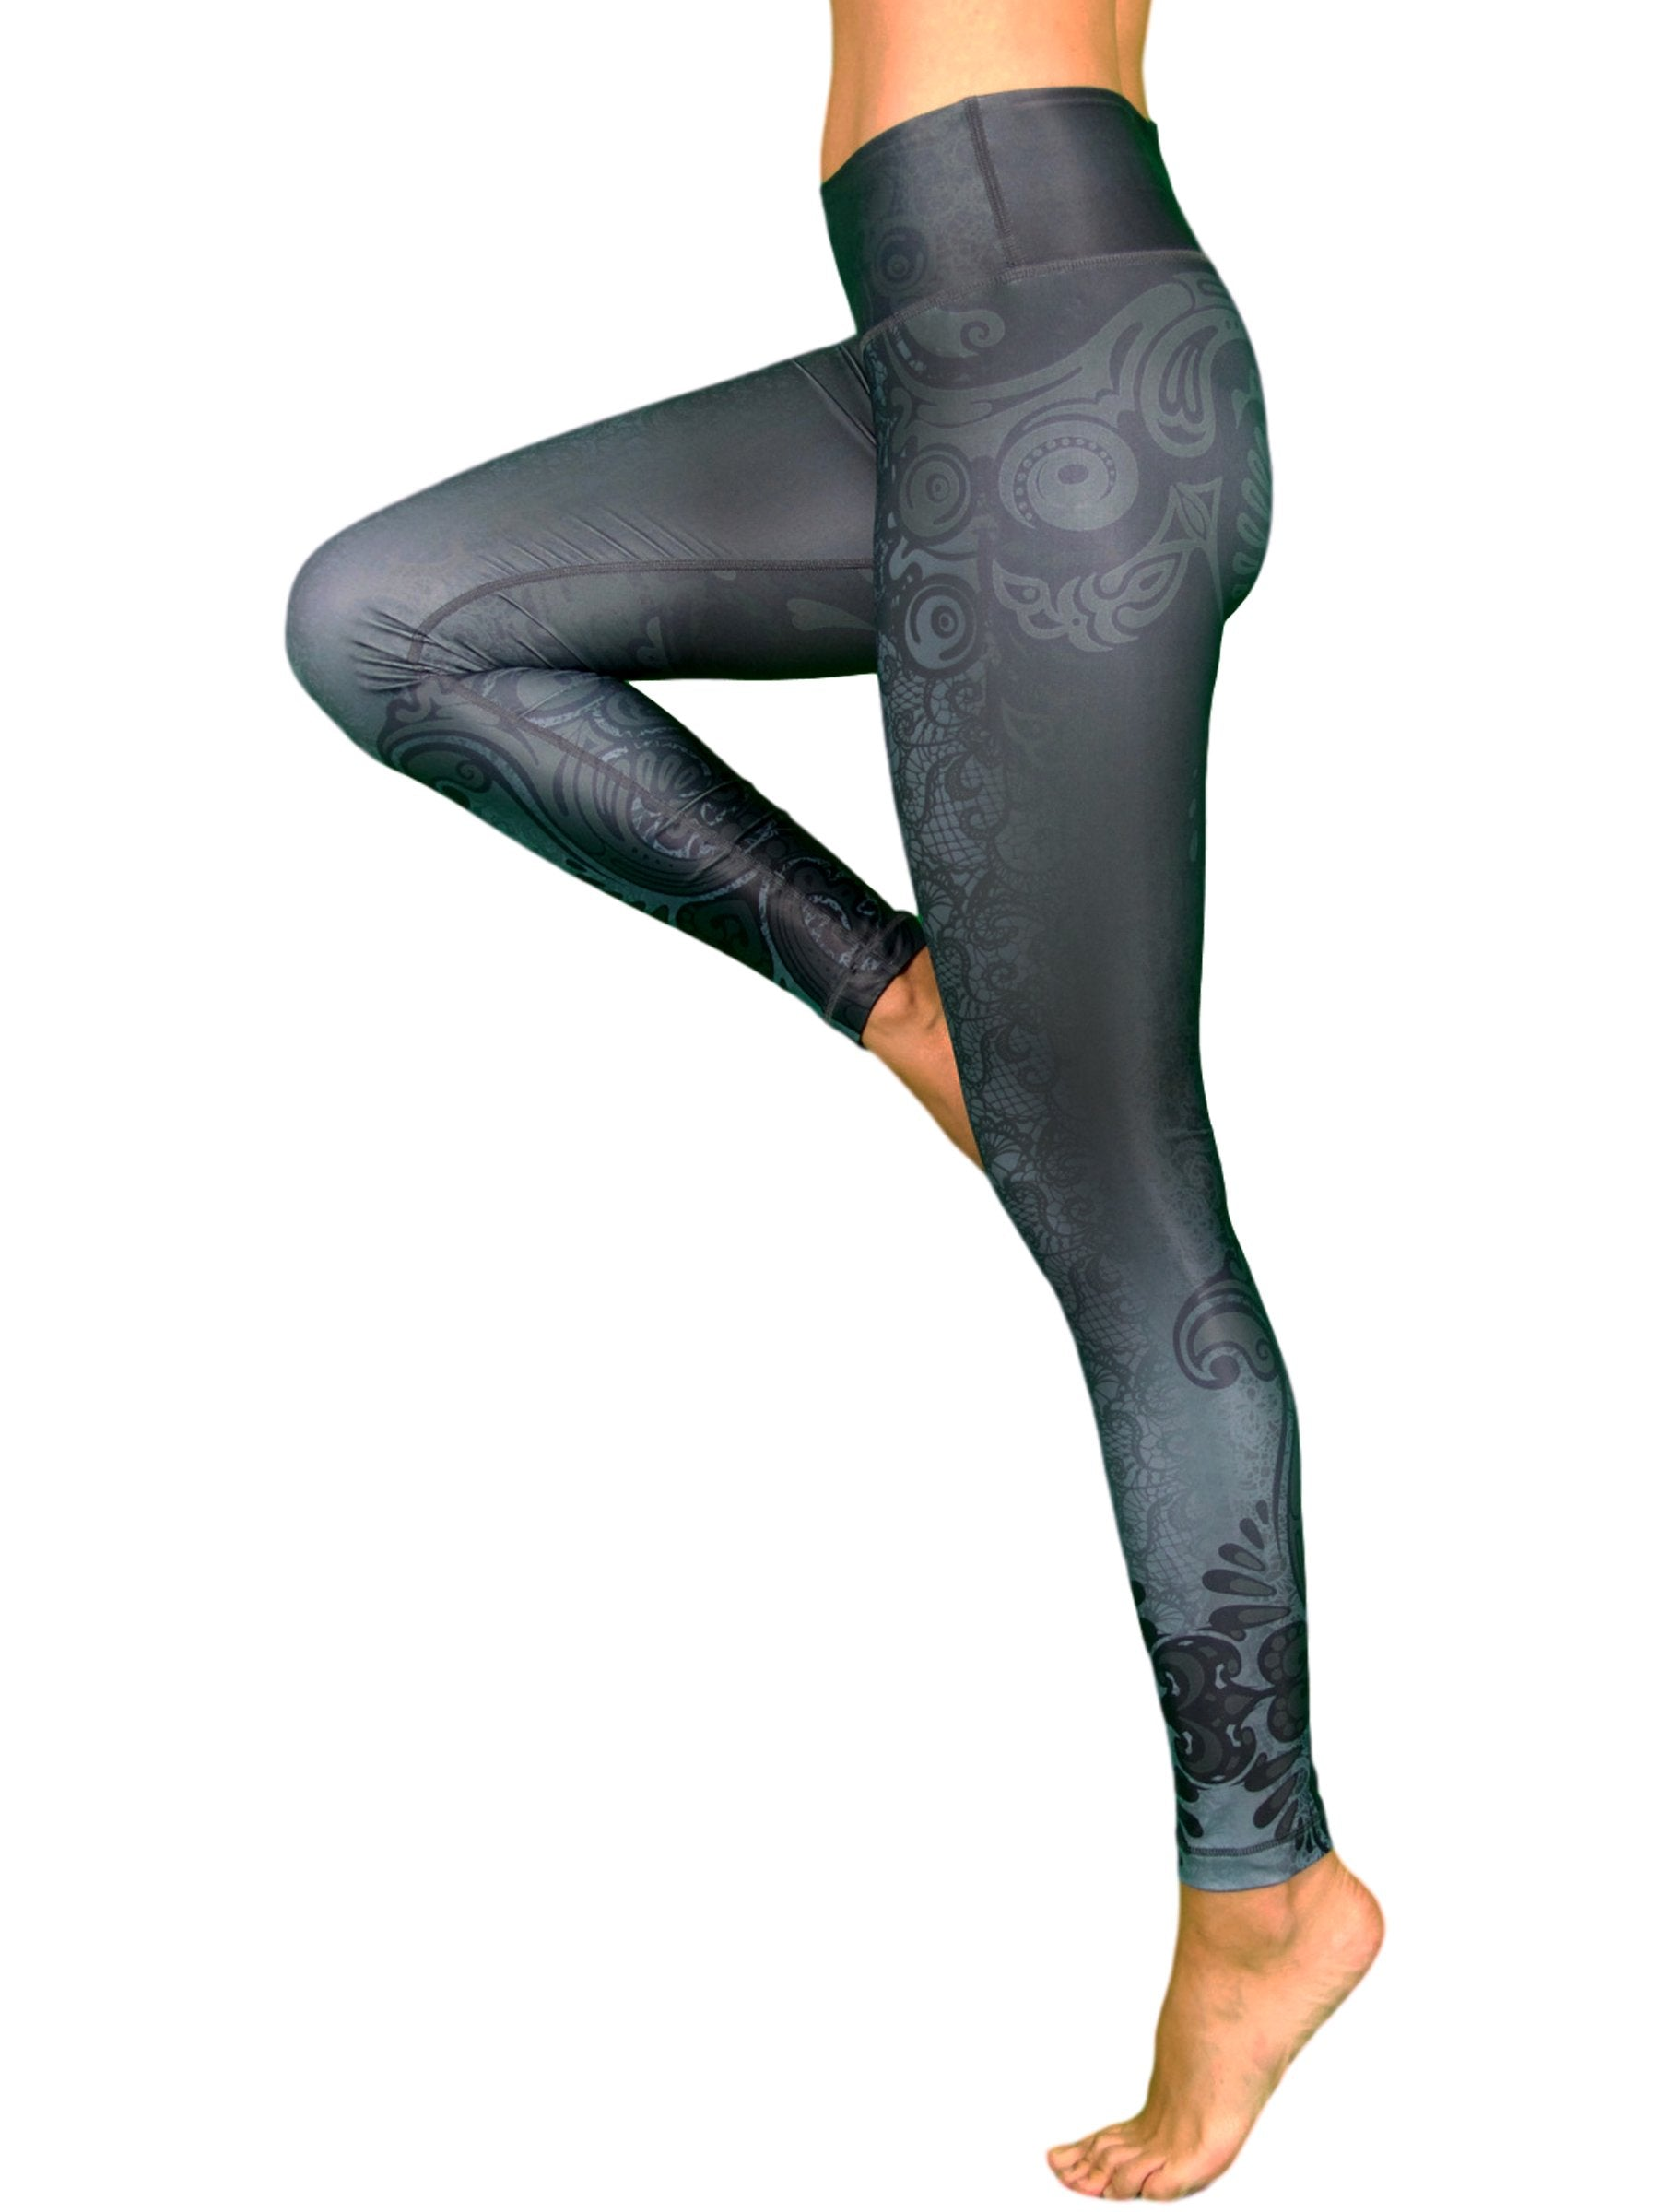 Maori Magic by Niyama - High Quality, Yoga Legging for Movement Artists.